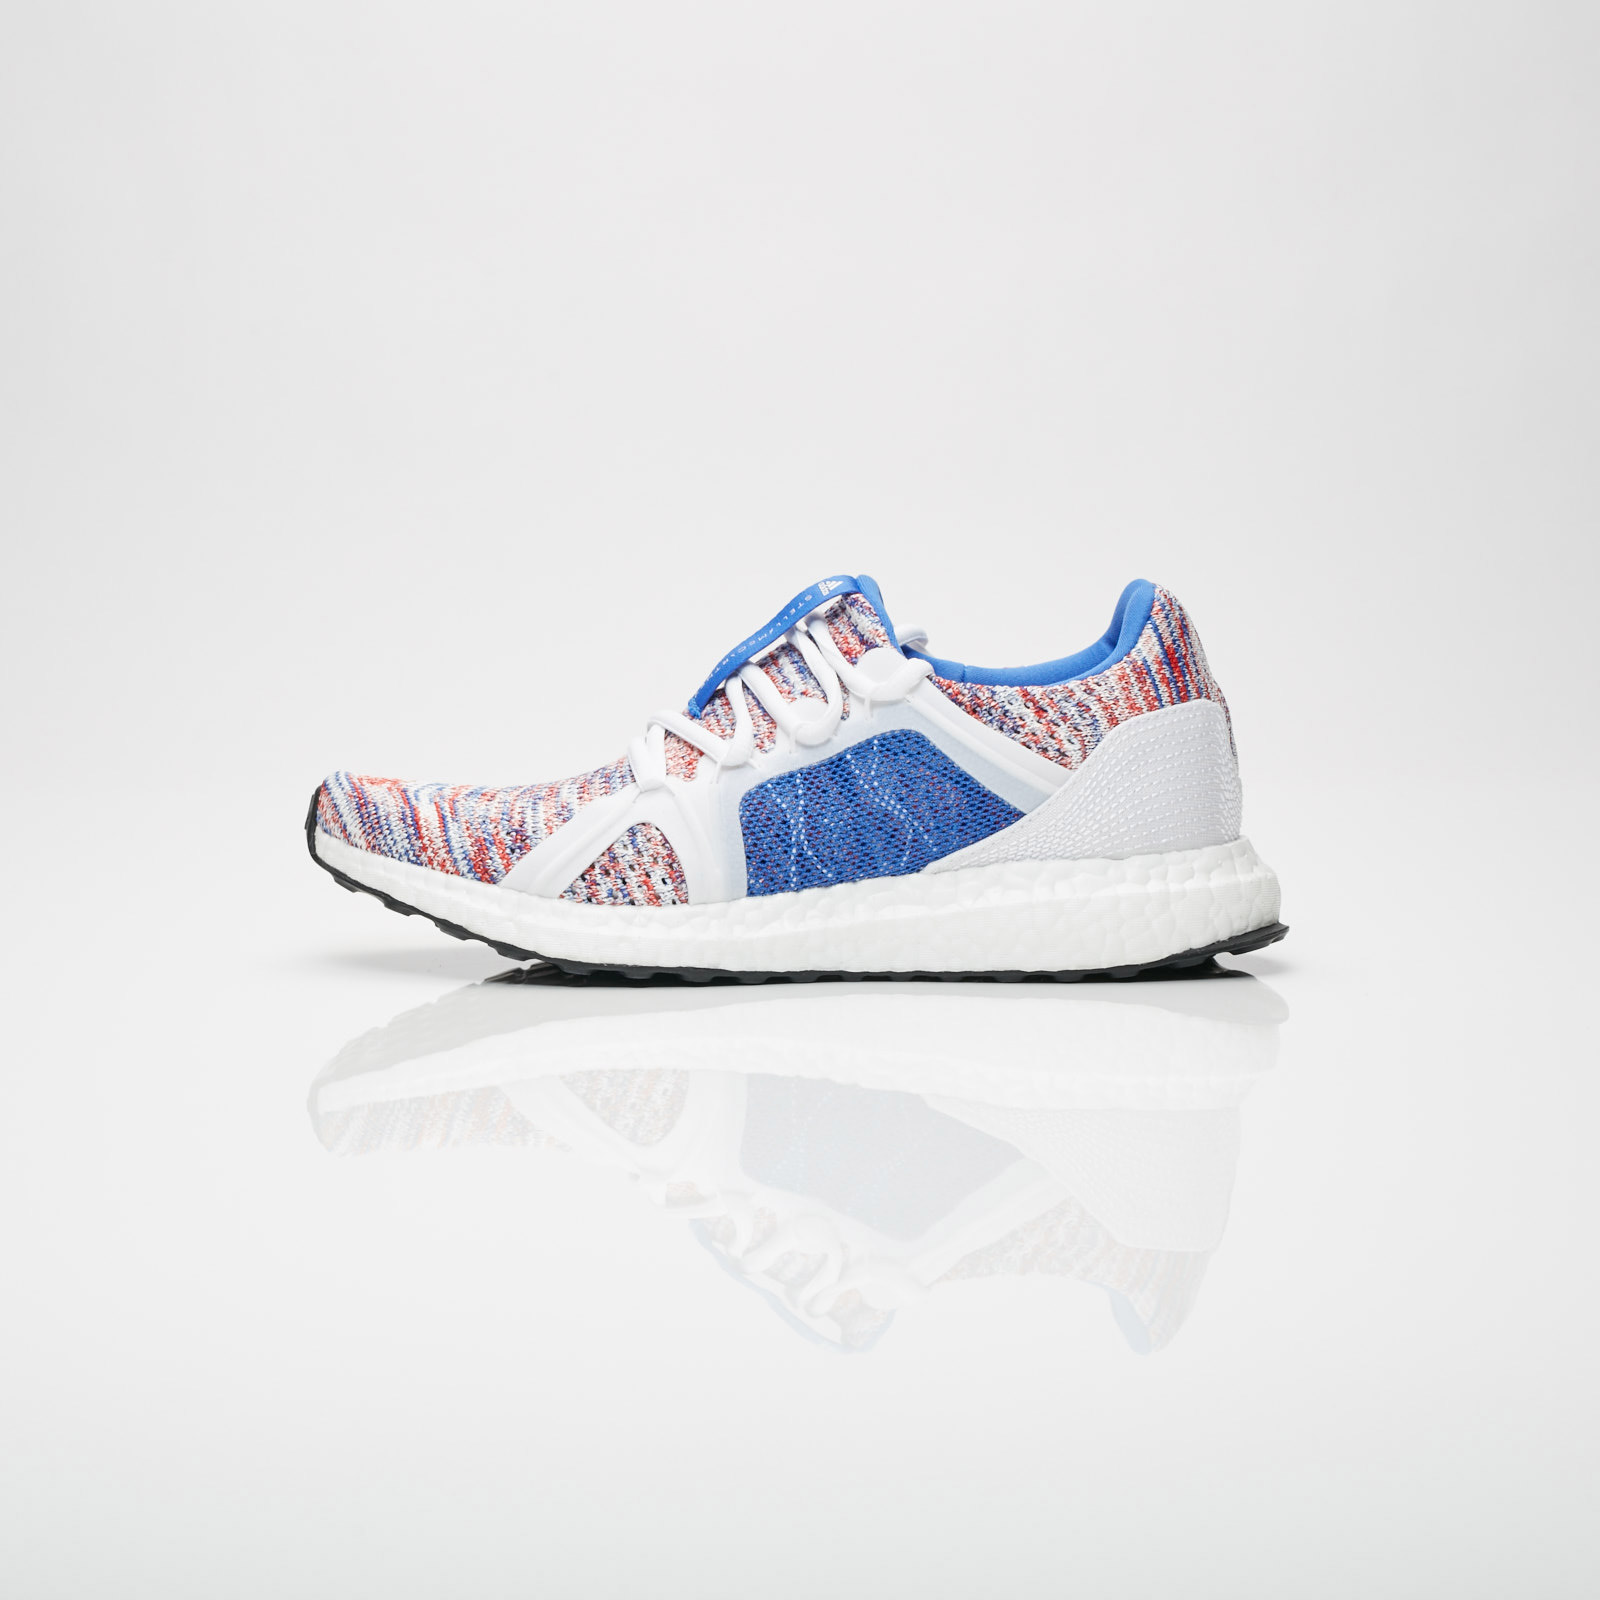 fd5c930f2b1 adidas by Stella McCartney UltraBOOST Parley - 6. Close